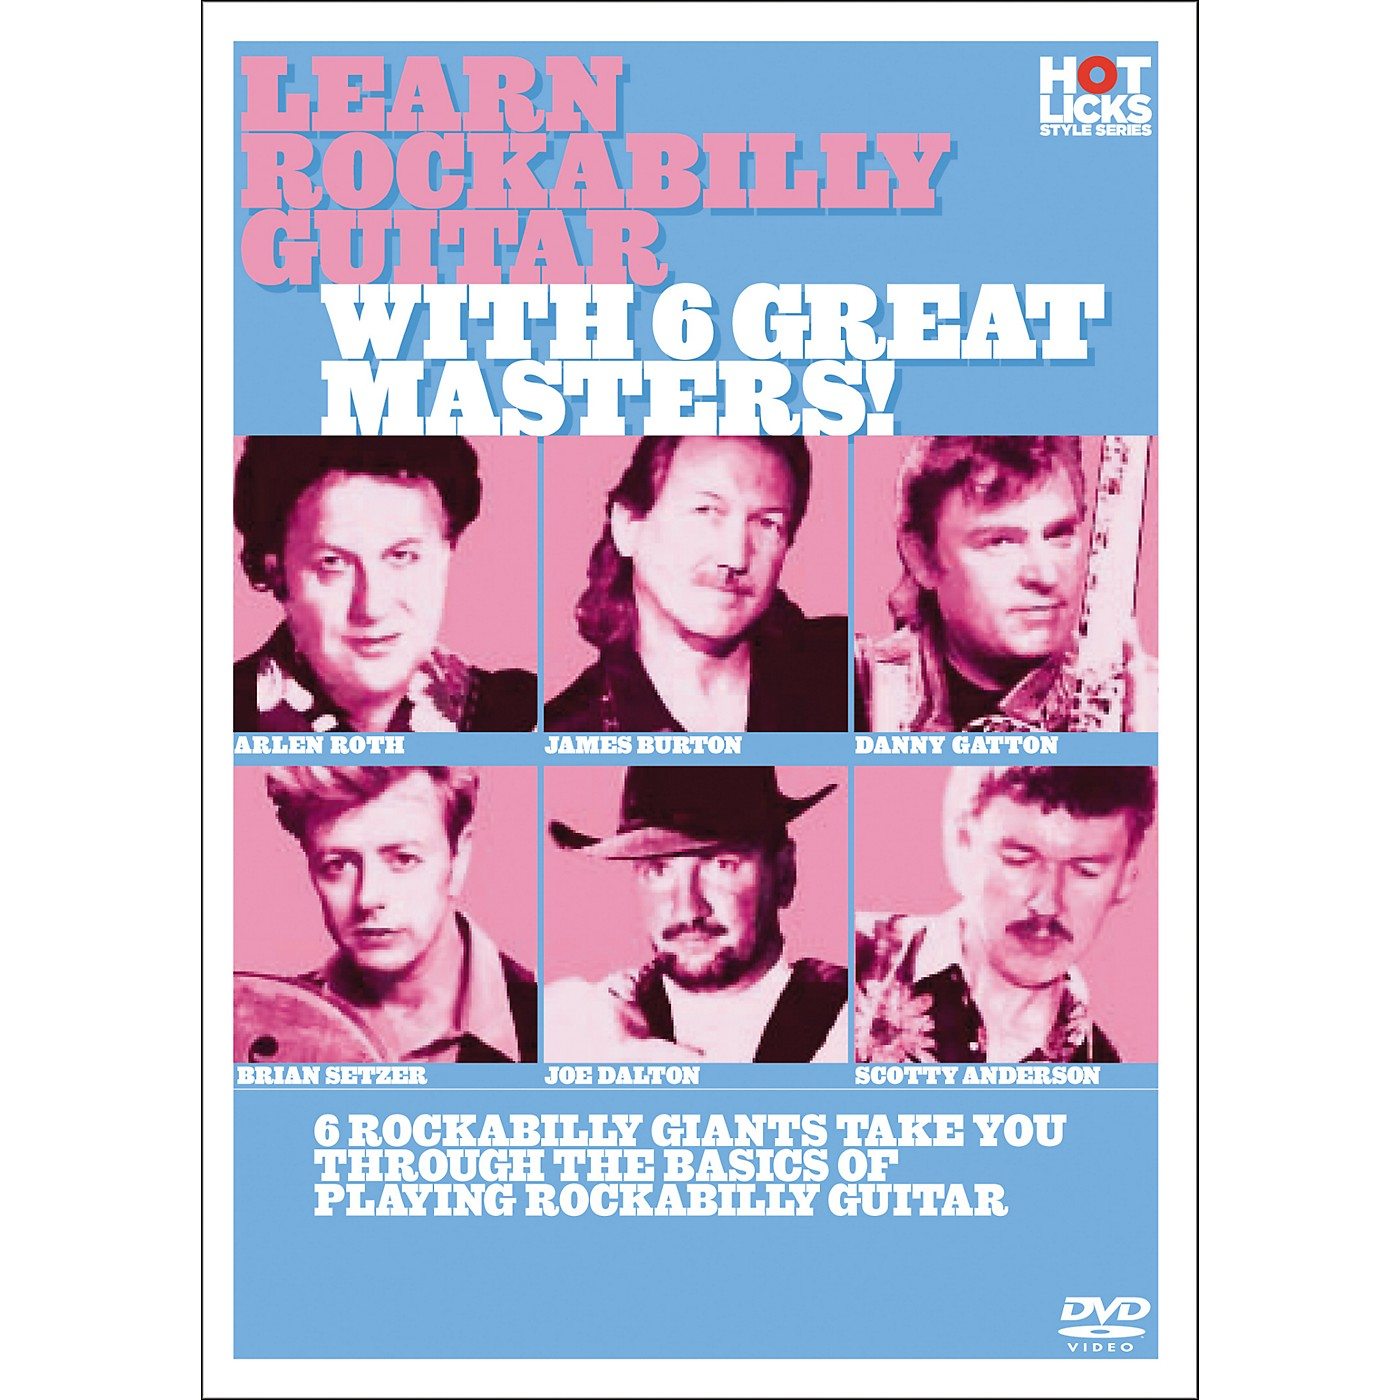 Hot Licks Learn Rockabilly Guitar with 6 Great Masters DVD thumbnail